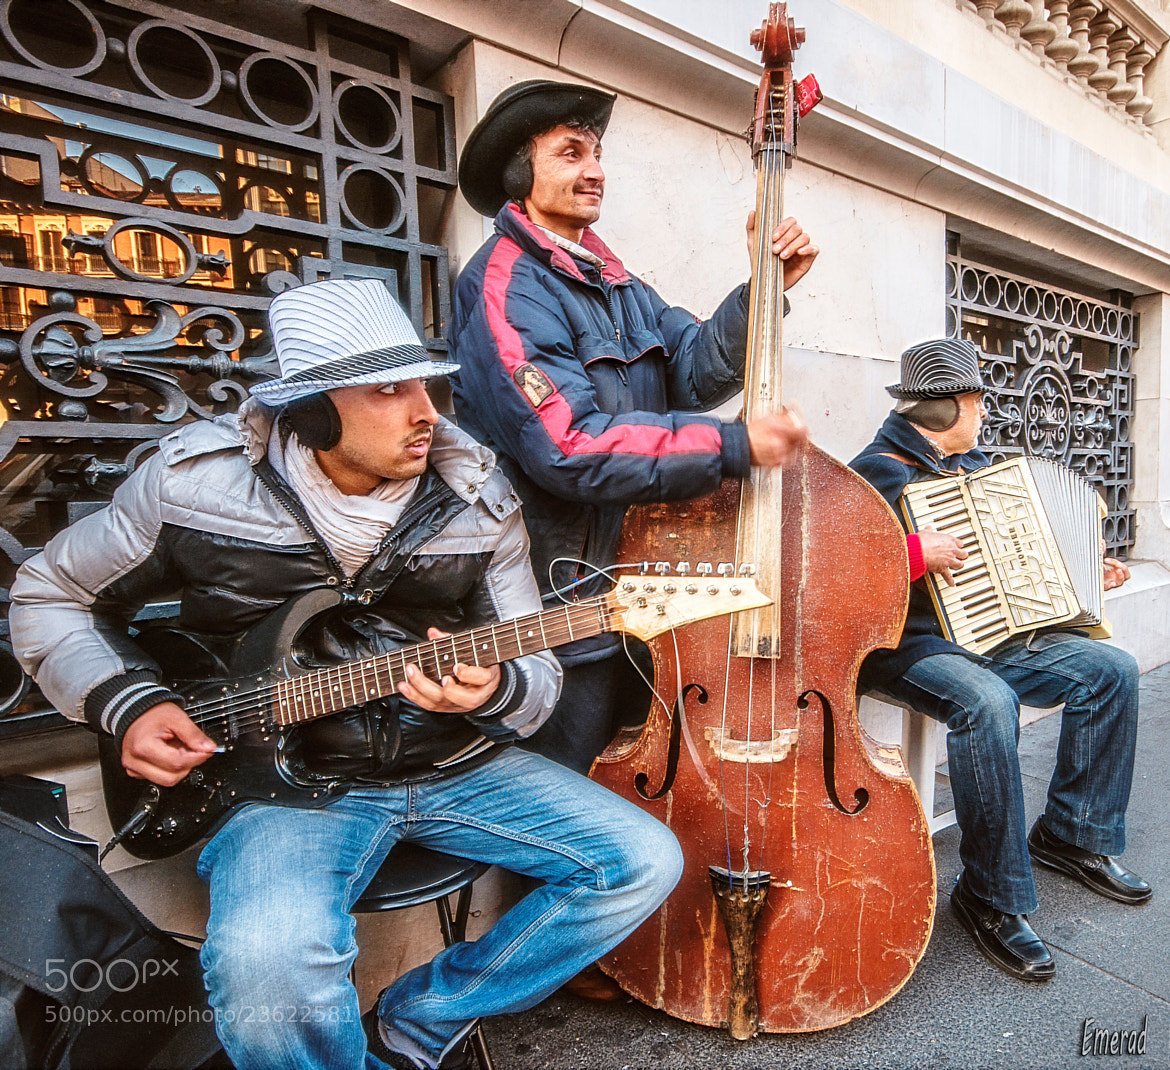 Photograph The Band by Emilio Cabida on 500px